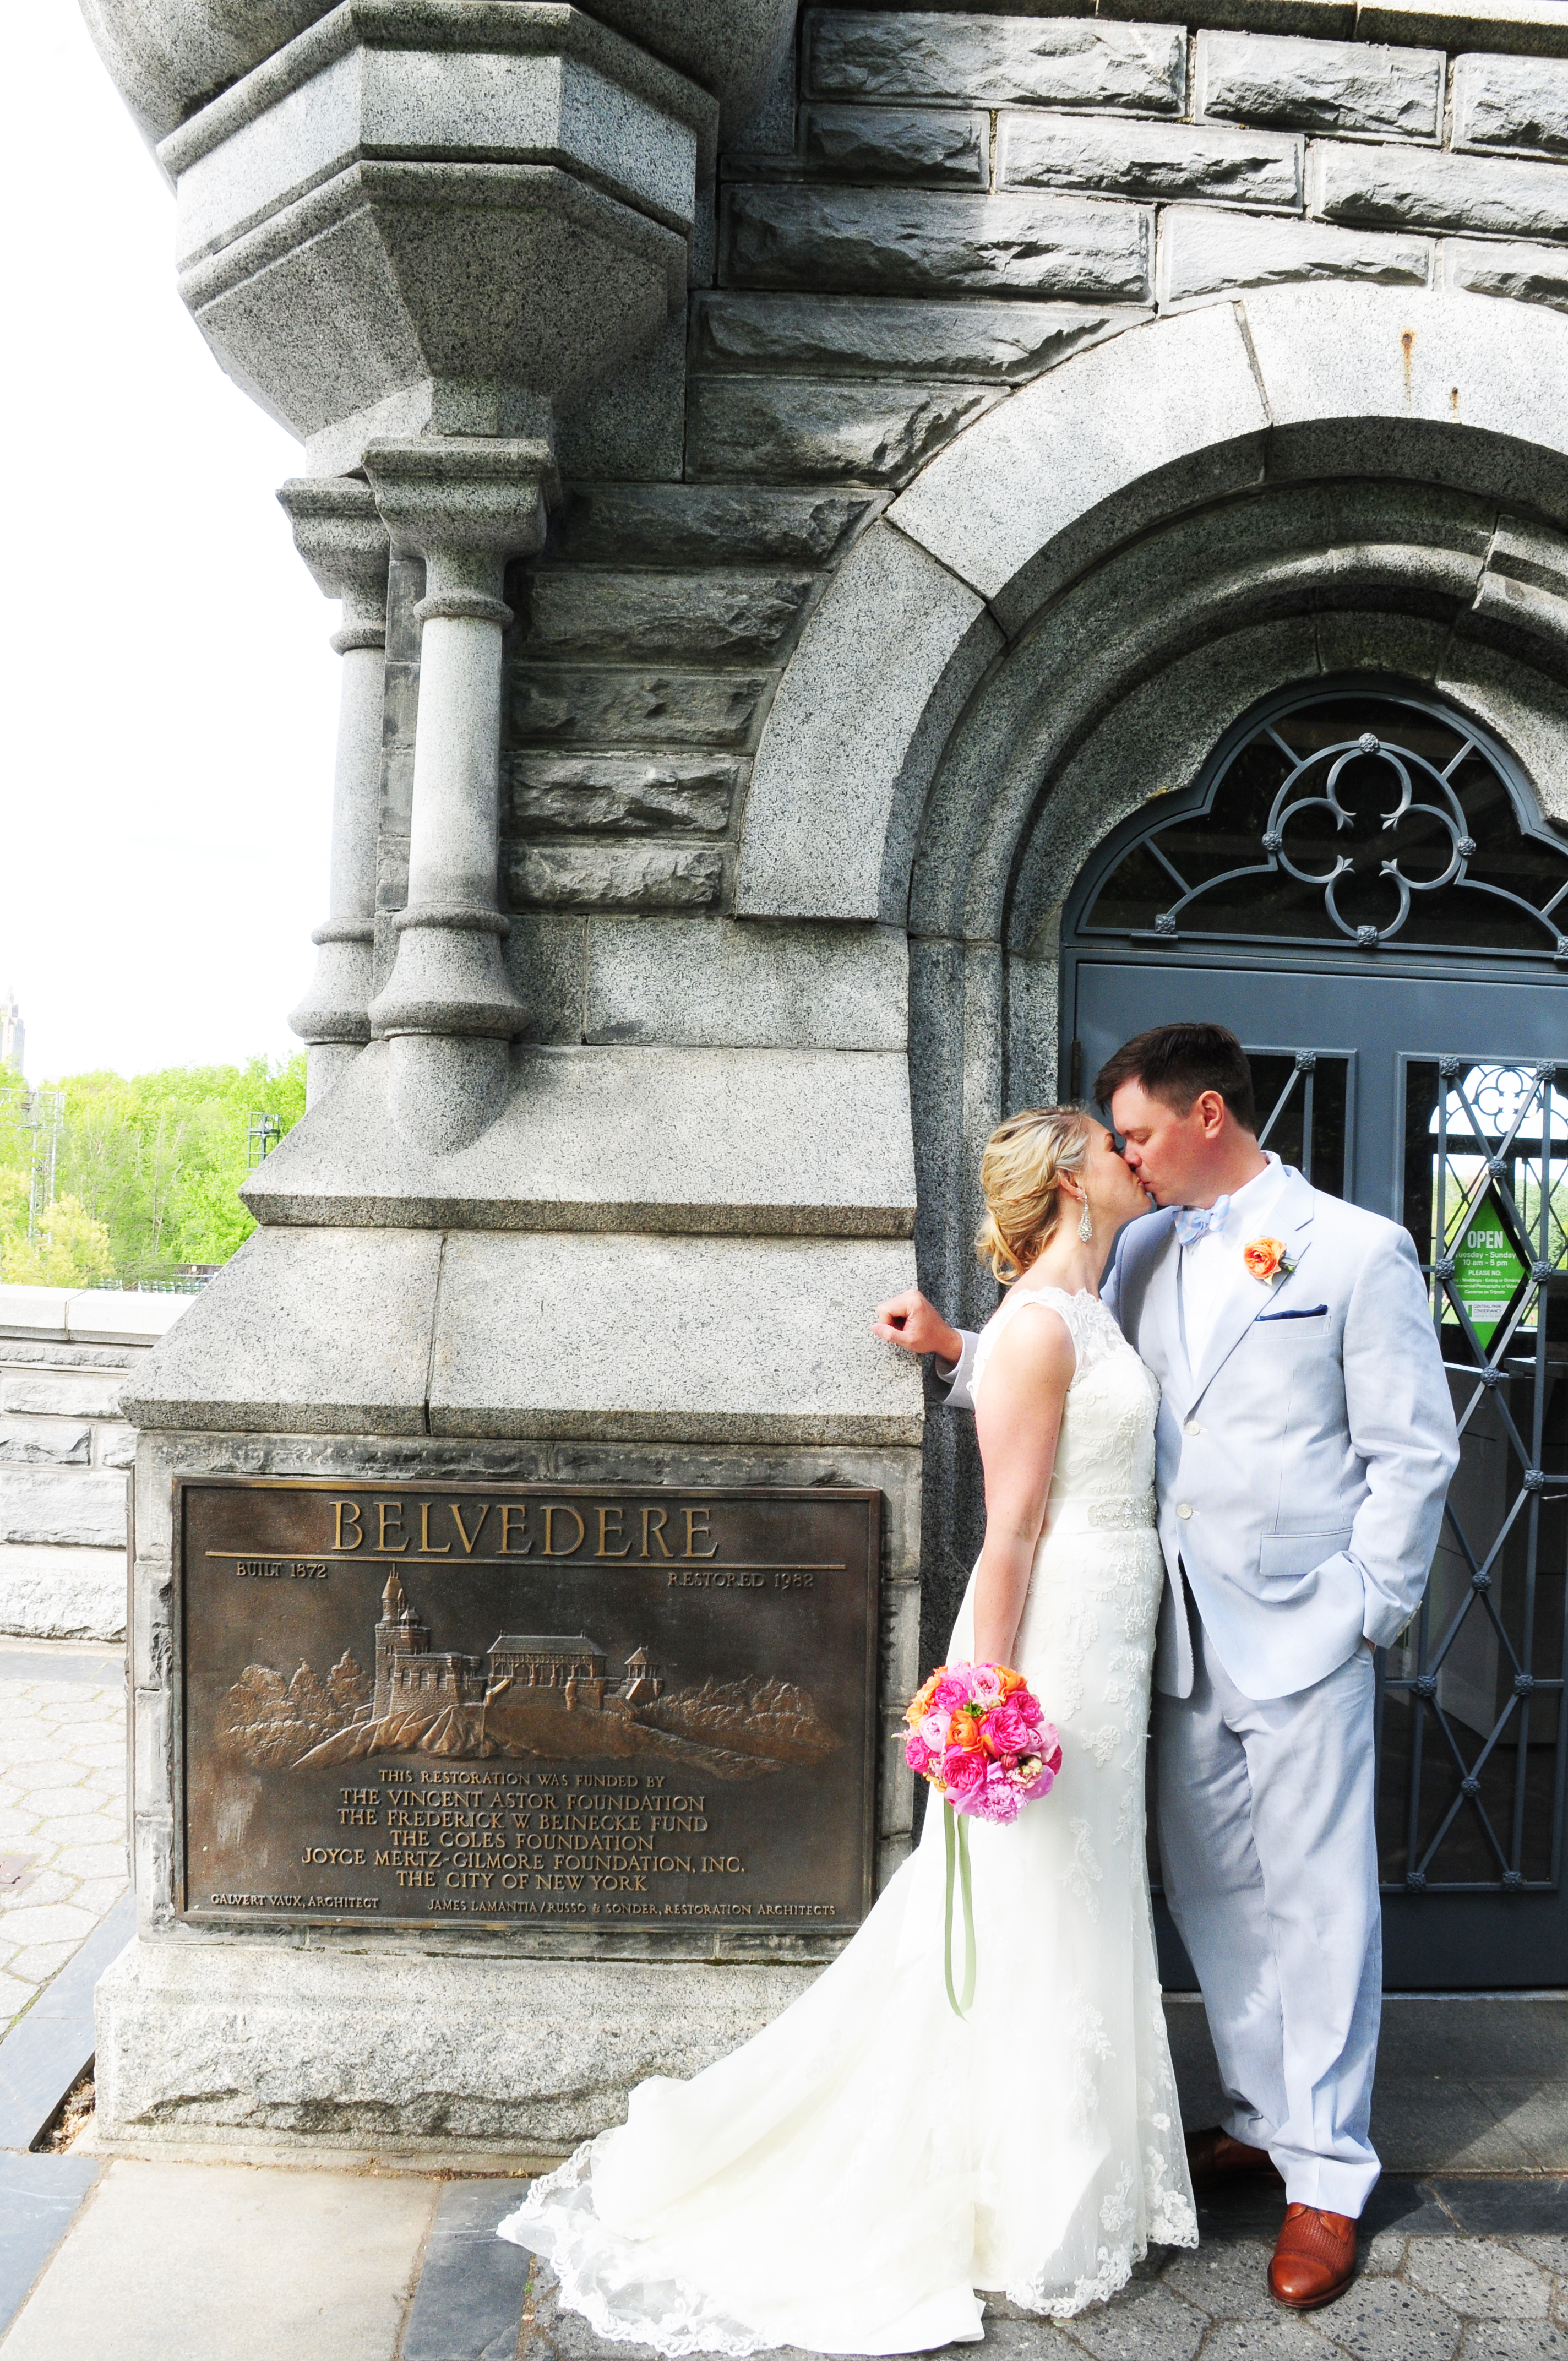 Daphne and Brian marry in NYC's Central Park - Hudson Valley Wedding